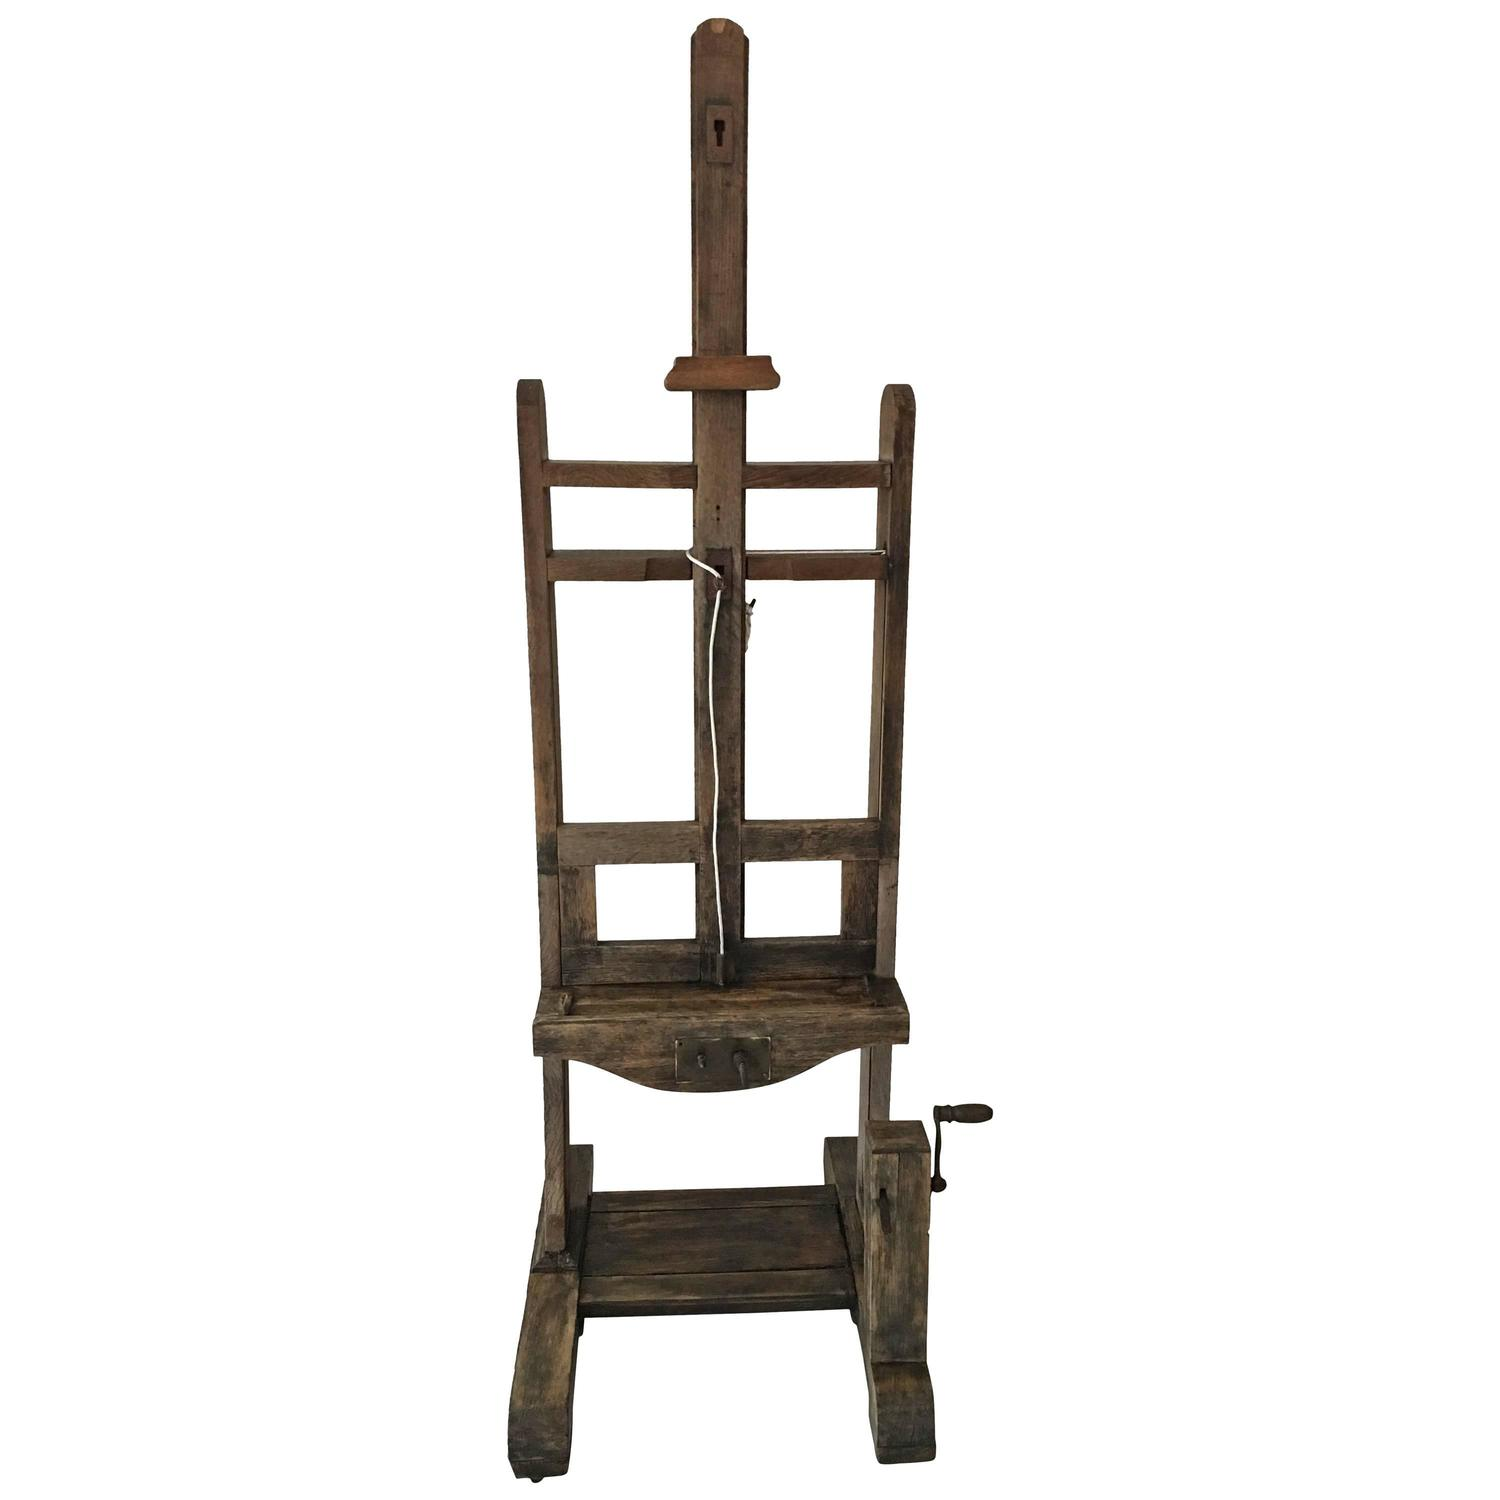 19th Century Artist Studio Oak Easel For Sale At 1stdibs